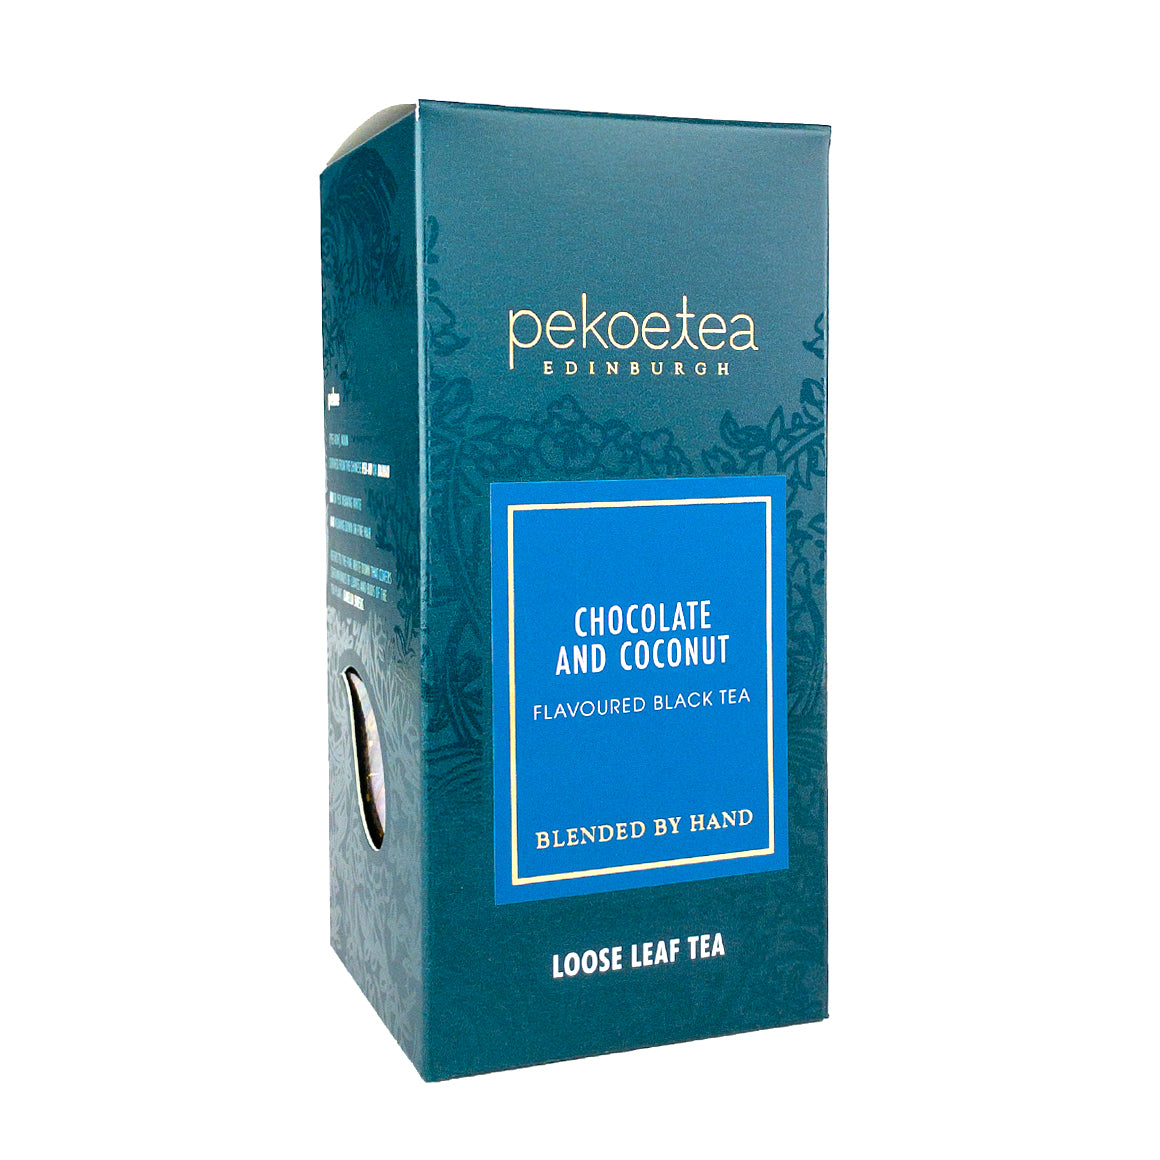 PekoeTea Edinburgh Chocolate and Coconut Hand Blended Tea Loose Leaf Box